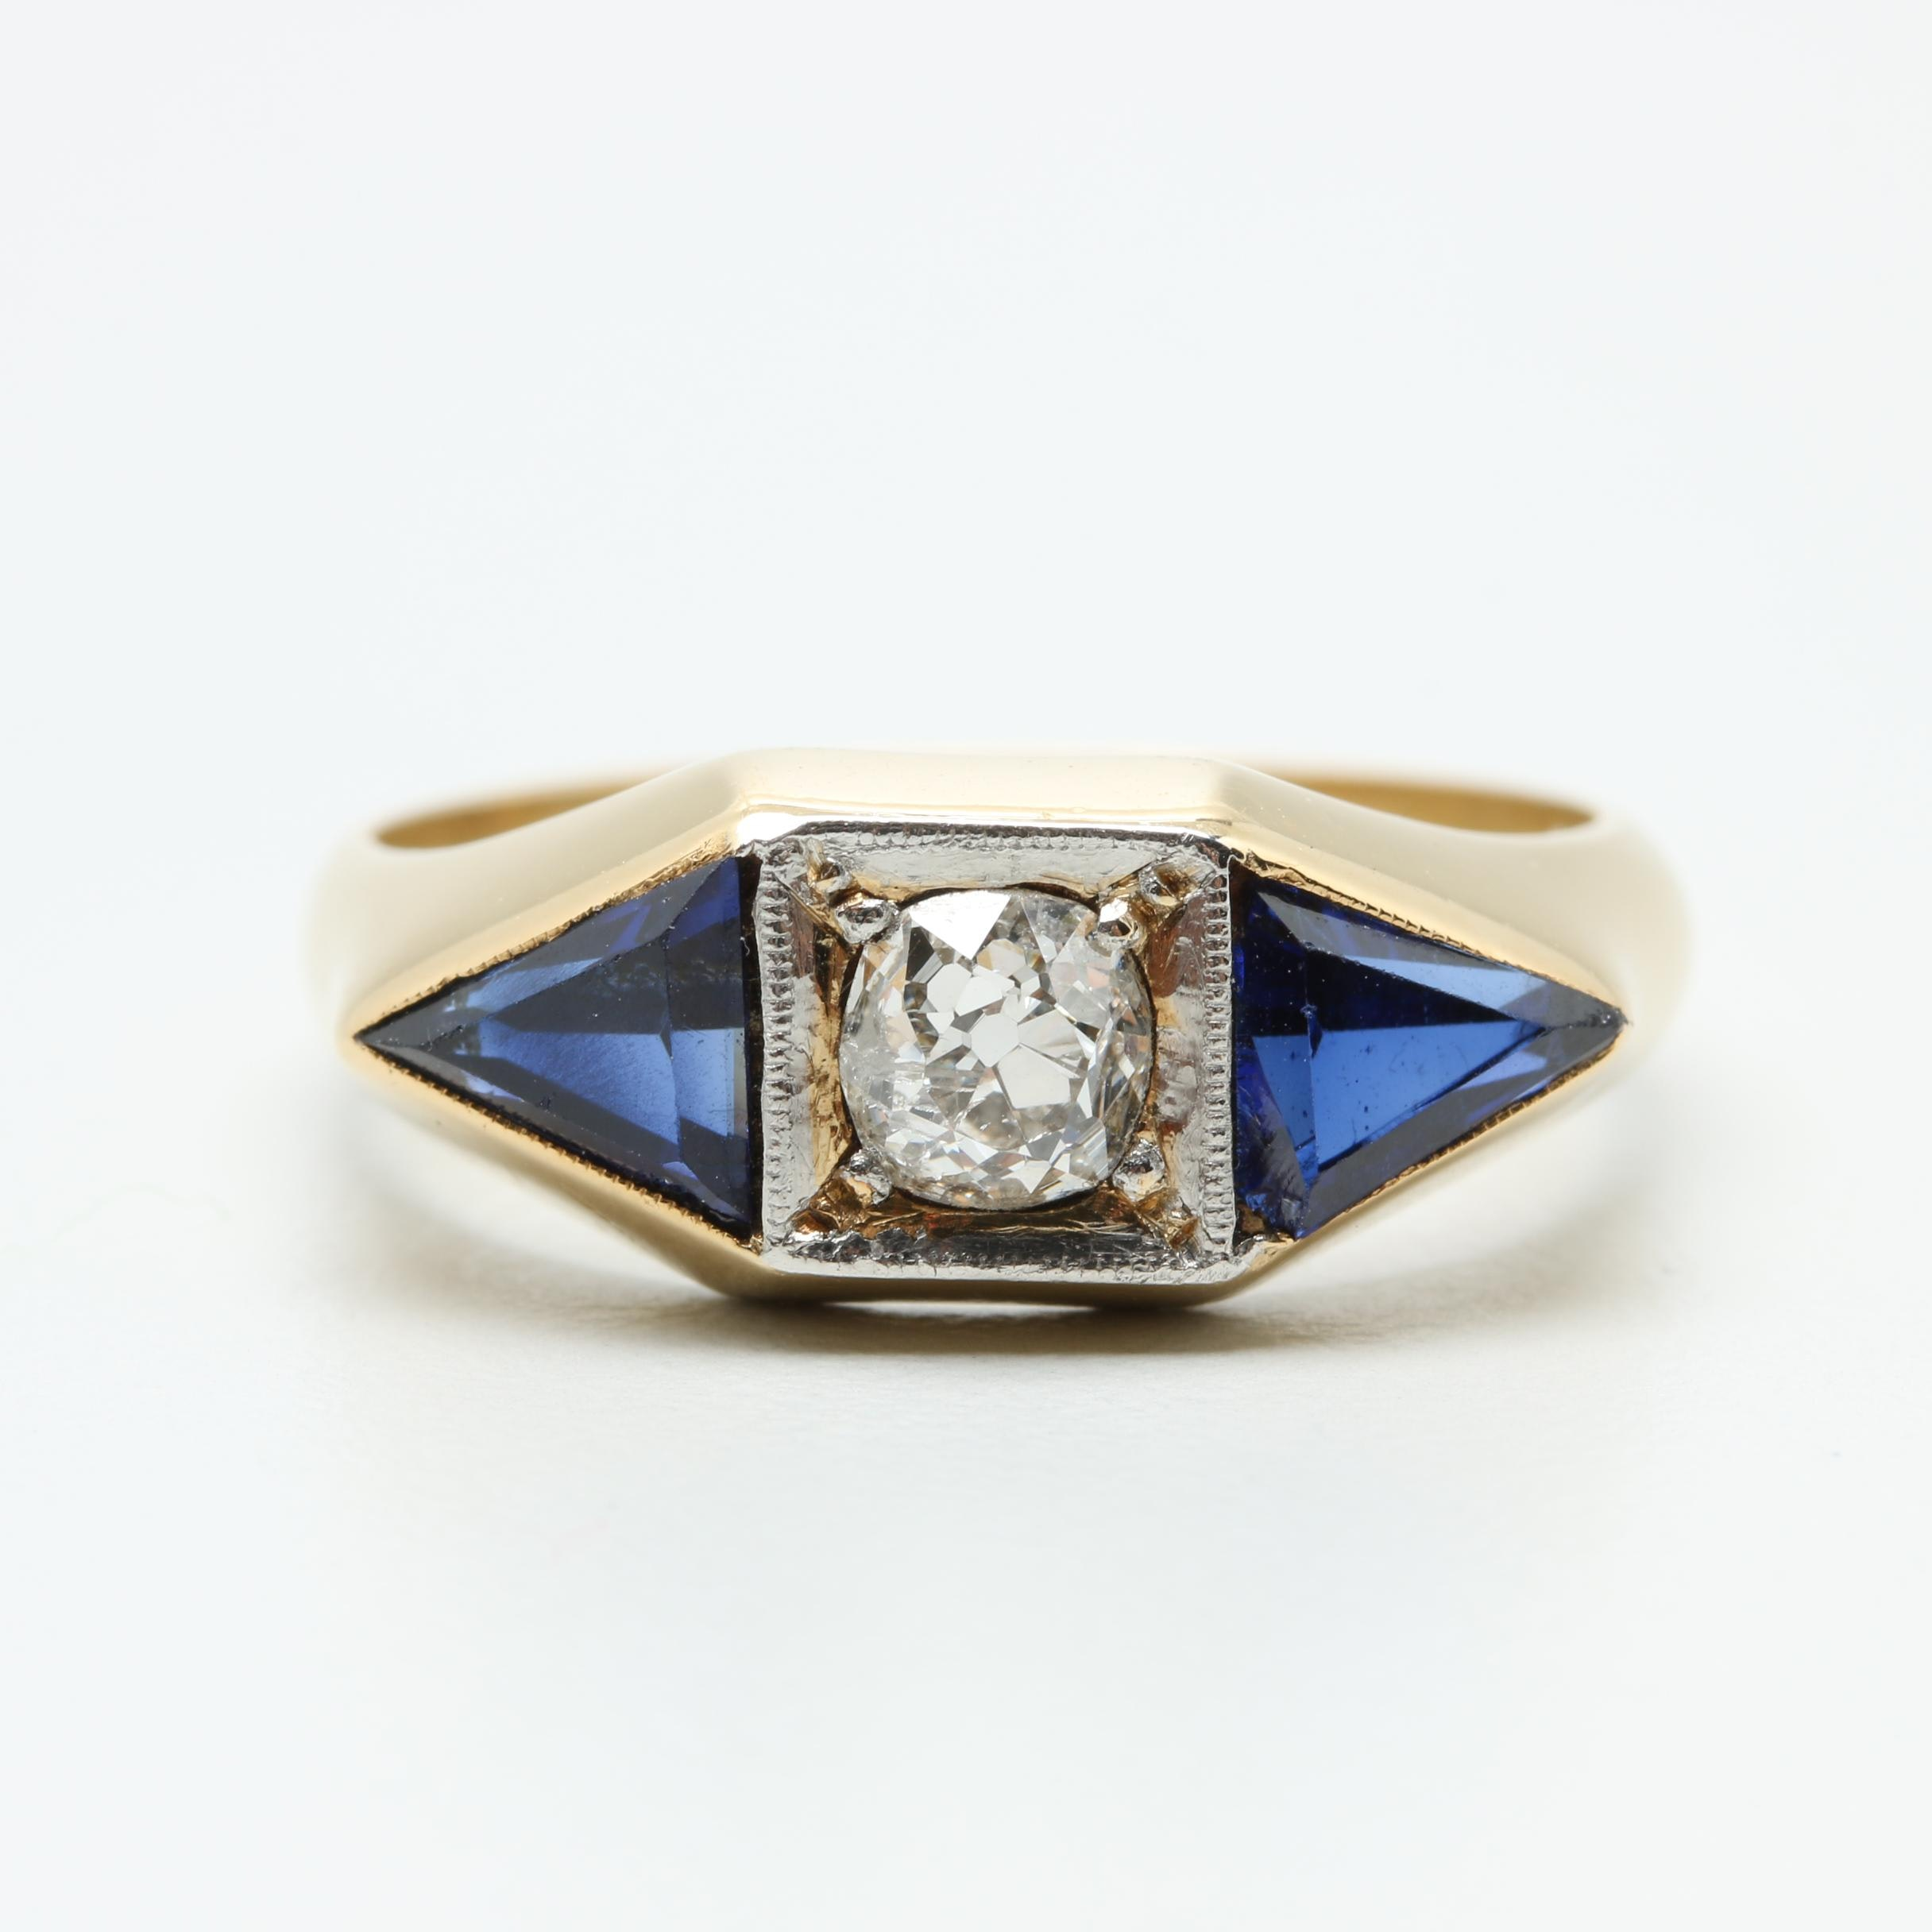 18K Yellow Gold Diamond and Synthetic Sapphire Ring